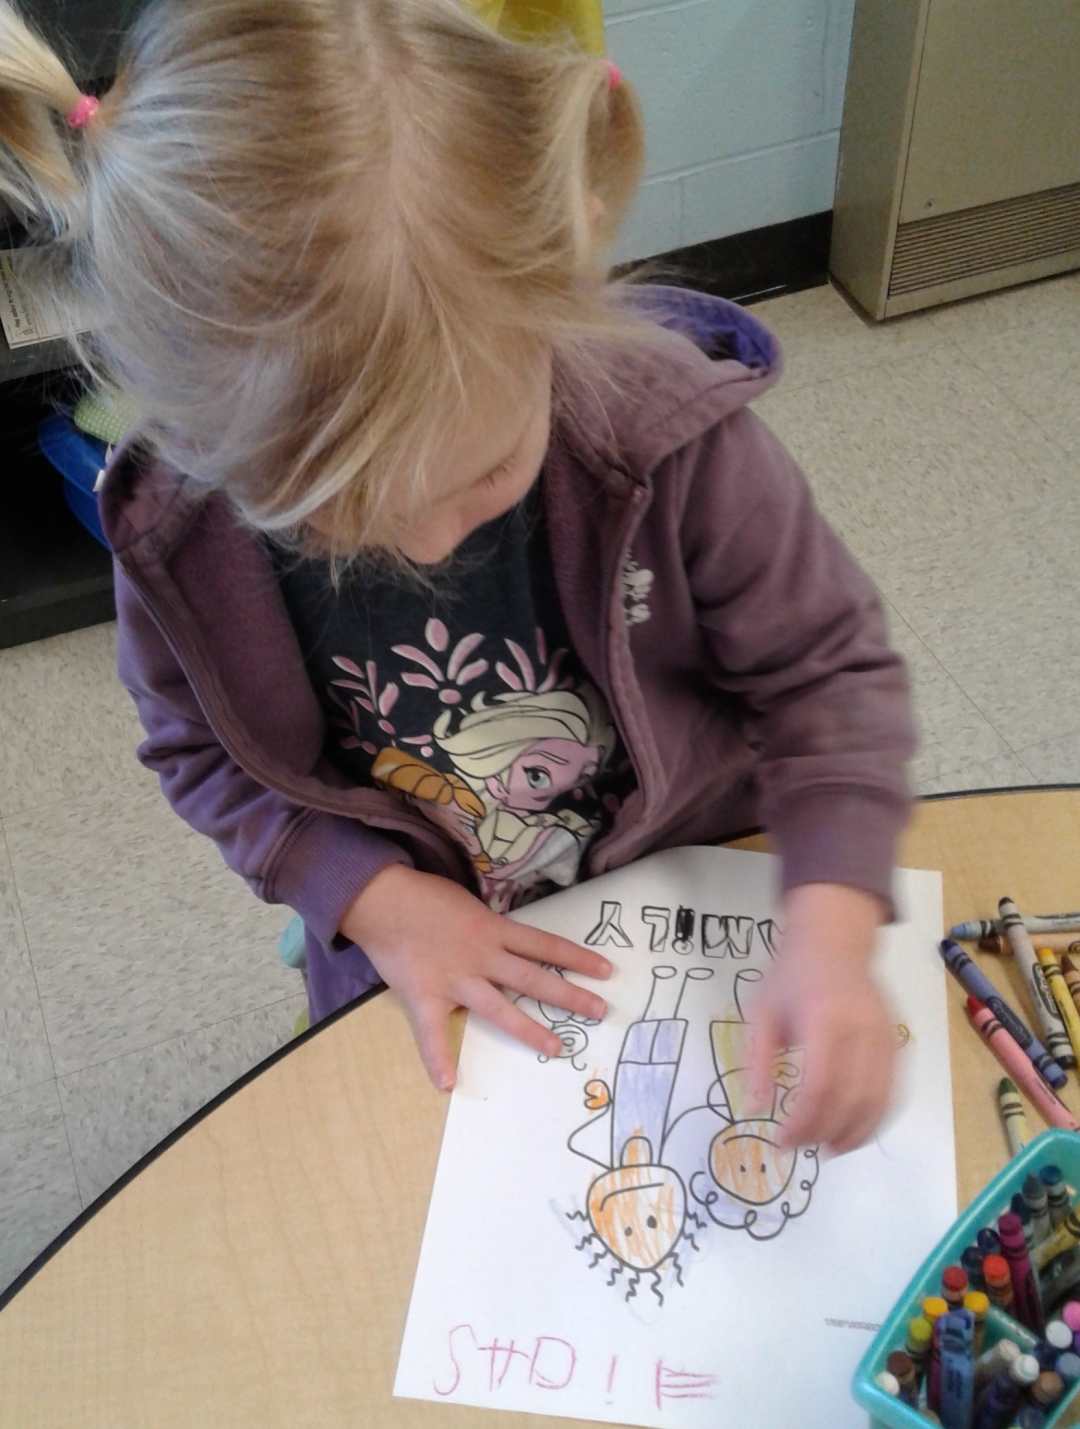 Child colouring a picture